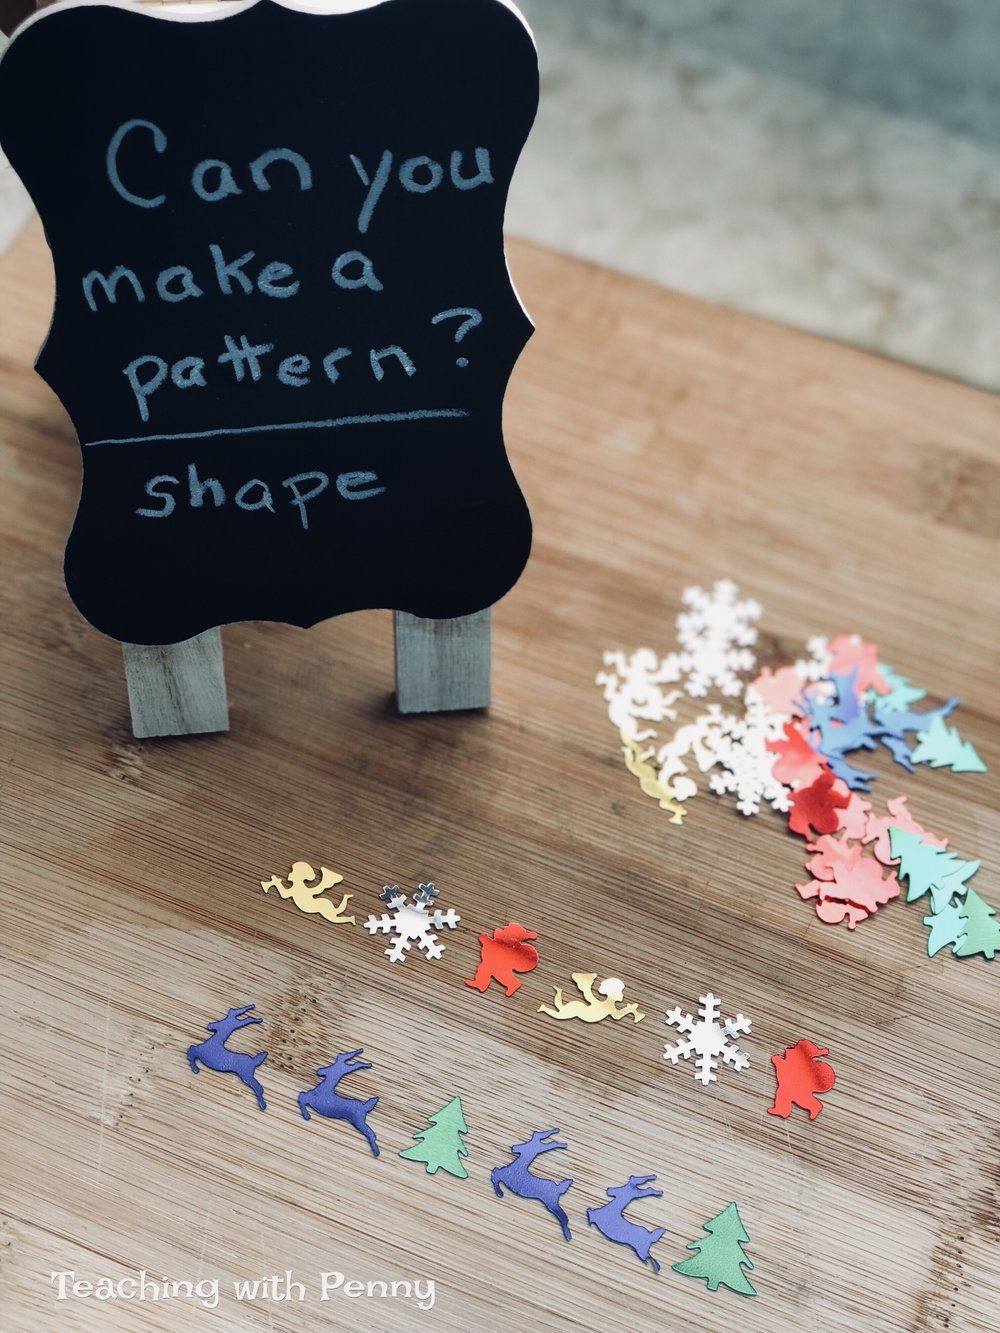 These Christmas confetti shapes are perfect for little fingers to practice their patterning and fine-motor skills. The packages usually come with so many pieces that students could glue these onto the template or you could use these for crafts. You can find similar Christmas confetti on Amazon  here .